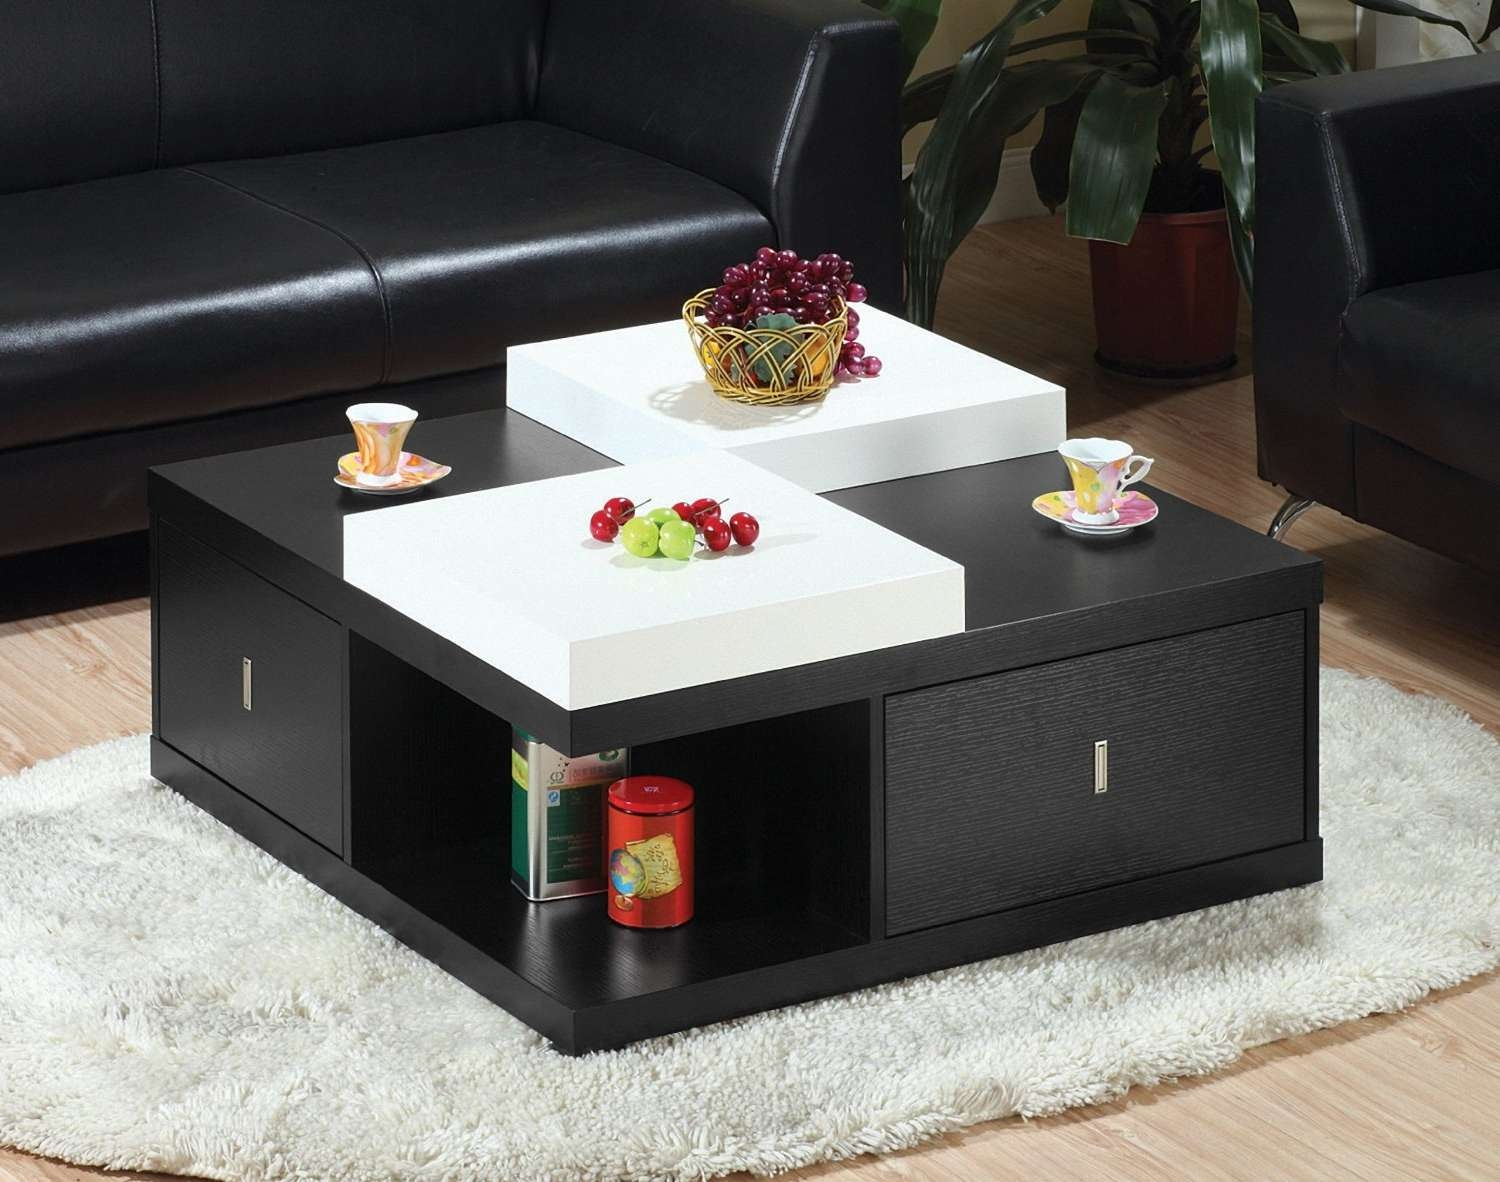 Newest Square Coffee Tables With Drawers Within Coffee Table: Breathtaking Large Square Coffee Table Decorating (Gallery 7 of 20)